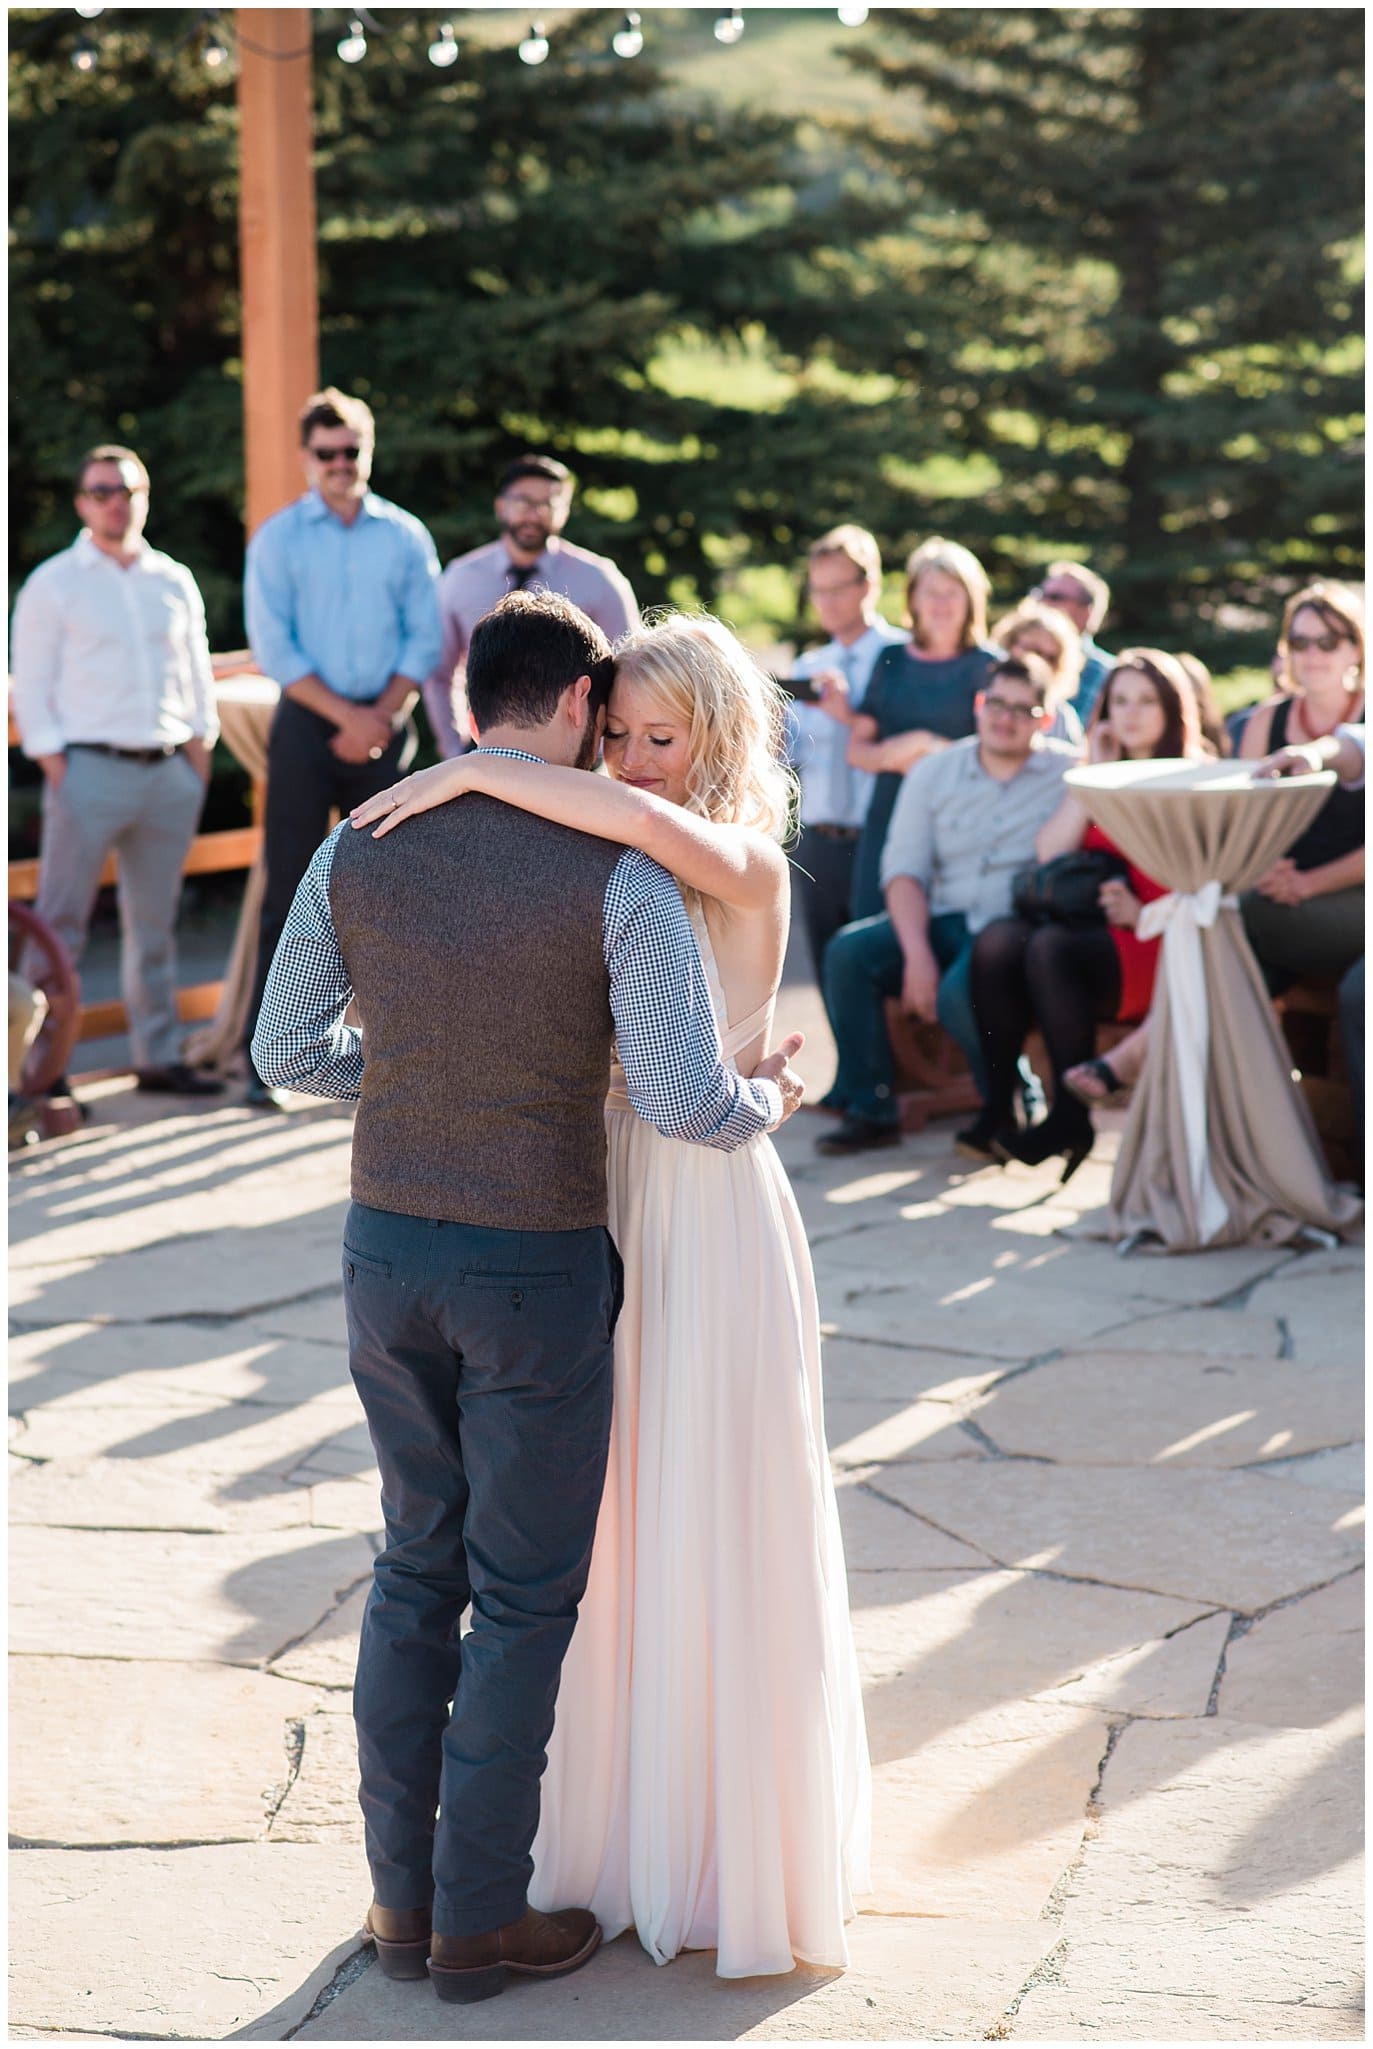 Romantic outdoor colorado first dance at Deer Creek Valley Ranch wedding by Boulder Wedding Photographer Jennie Crate Photographer